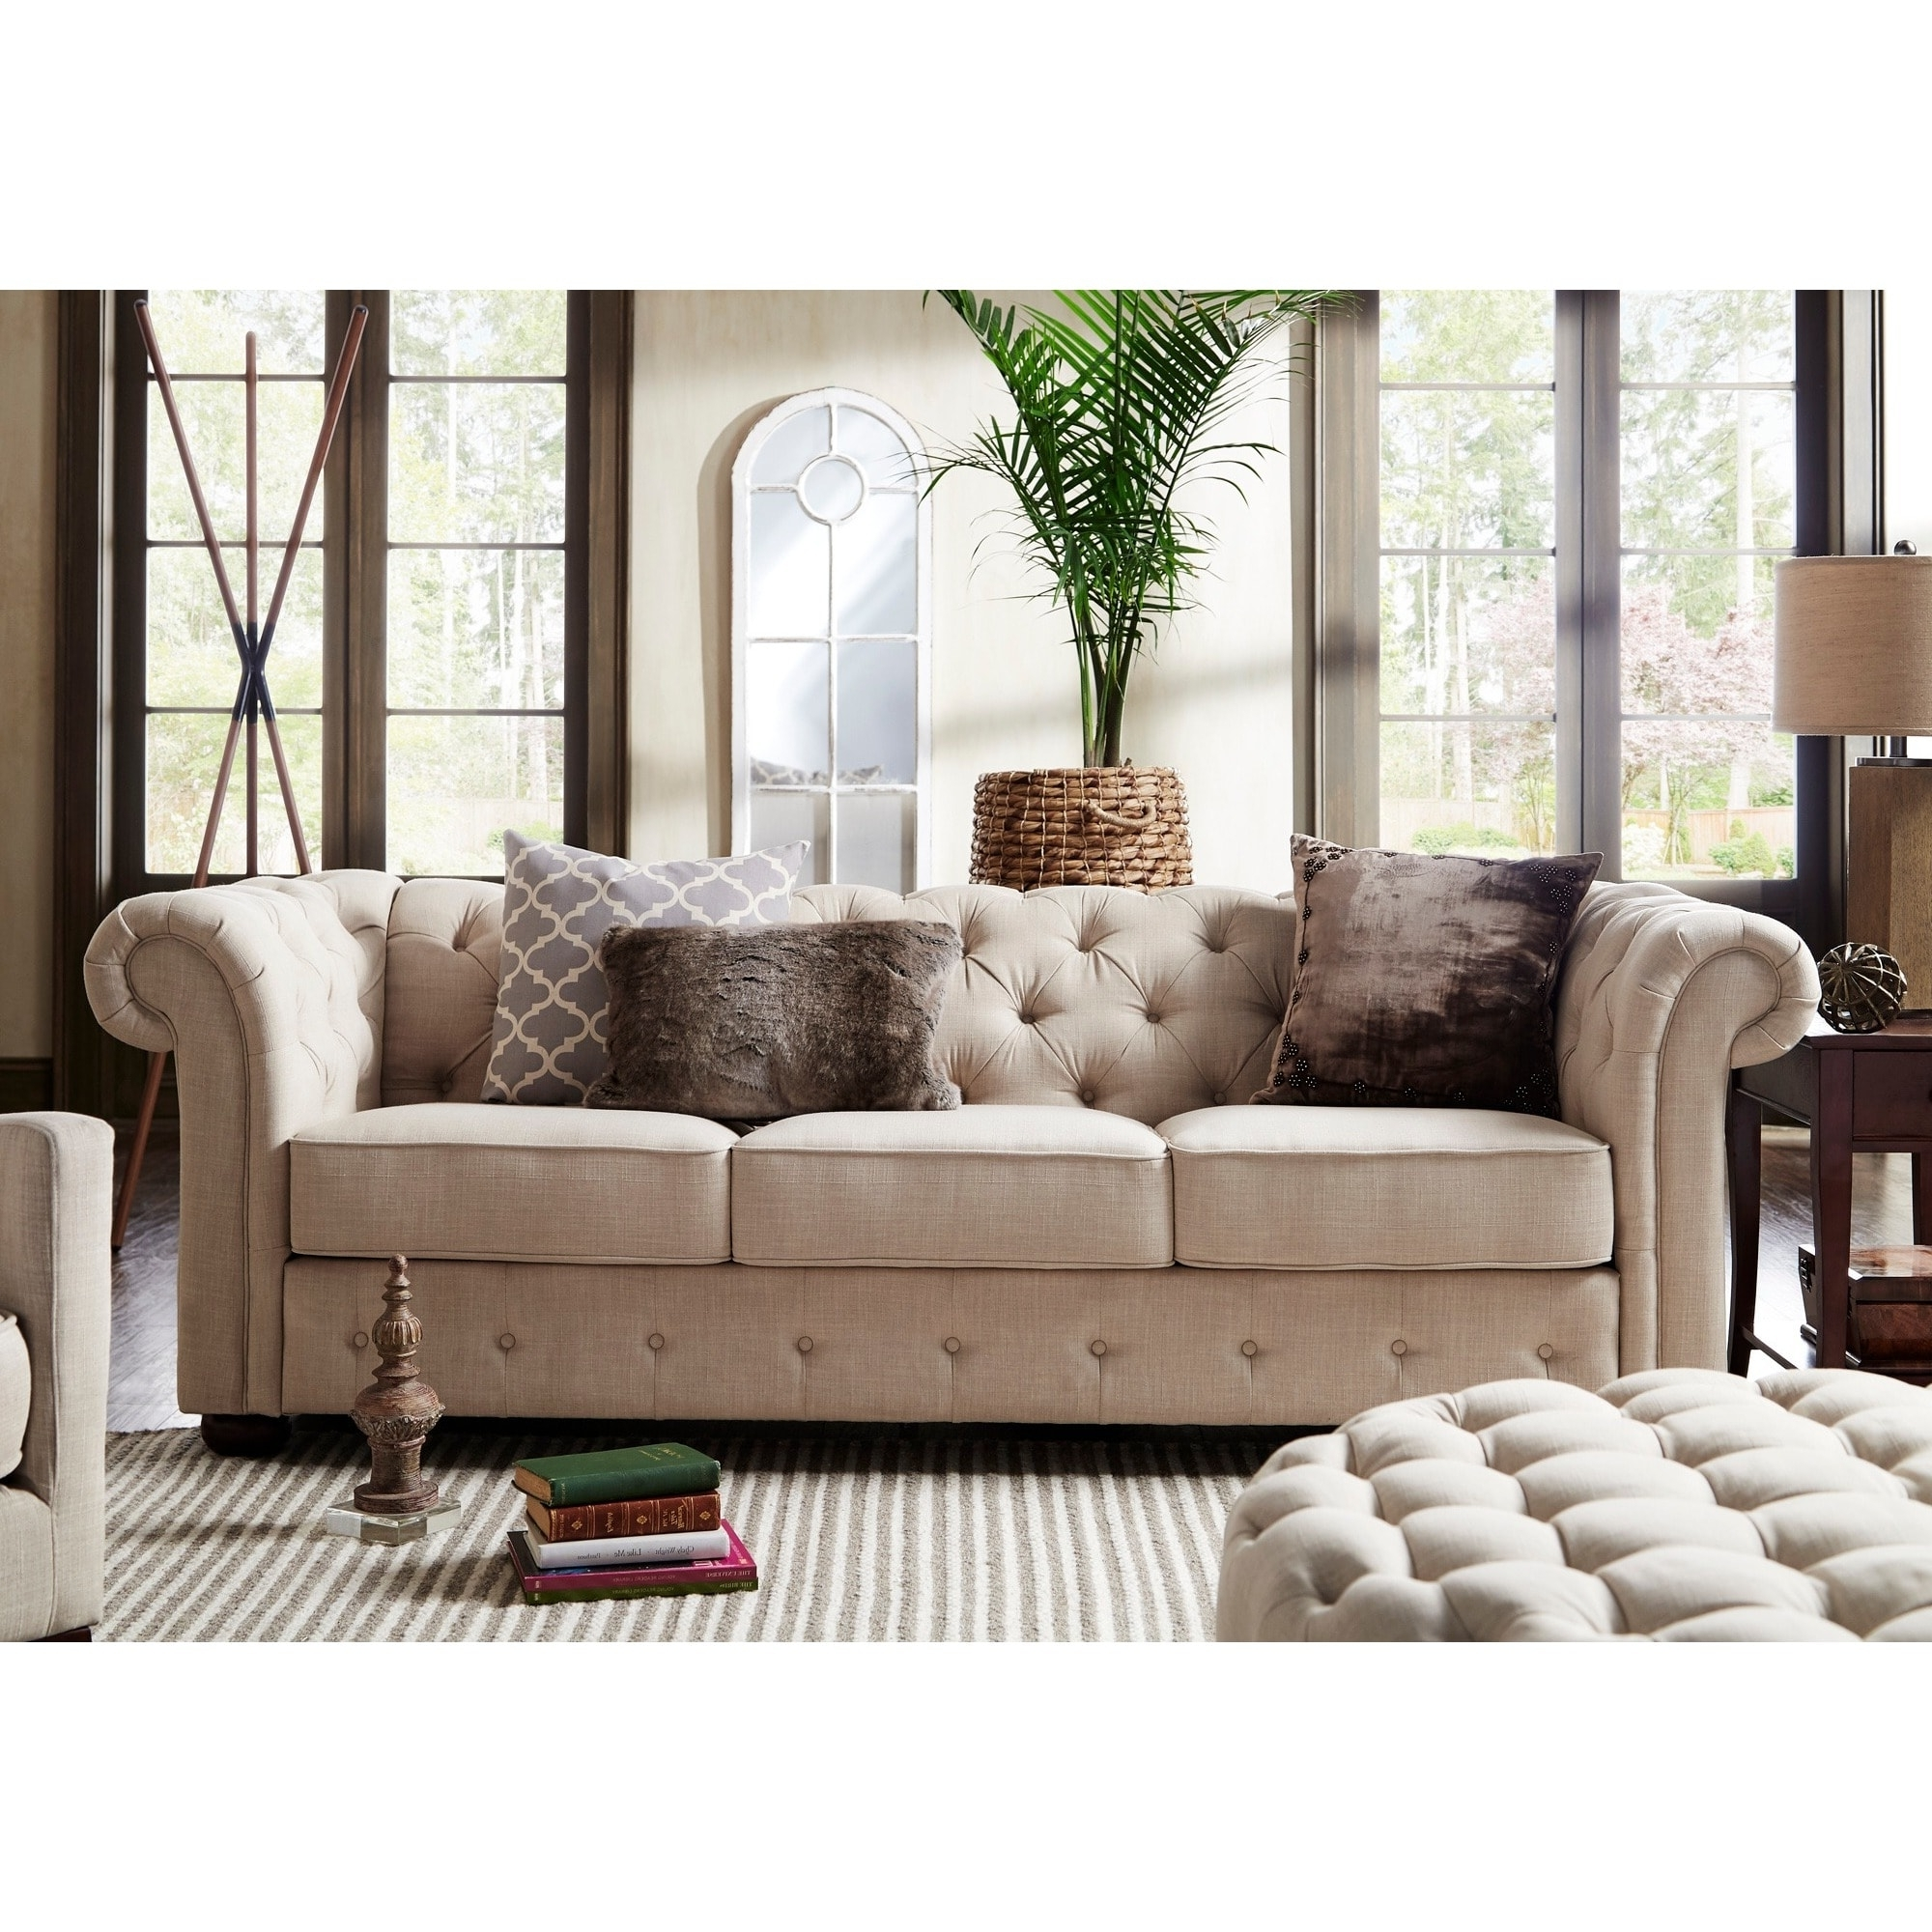 Famous Knightsbridge Beige Fabric Button Tufted Chesterfield Sofa And In Chesterfield Sofas And Chairs (View 13 of 15)